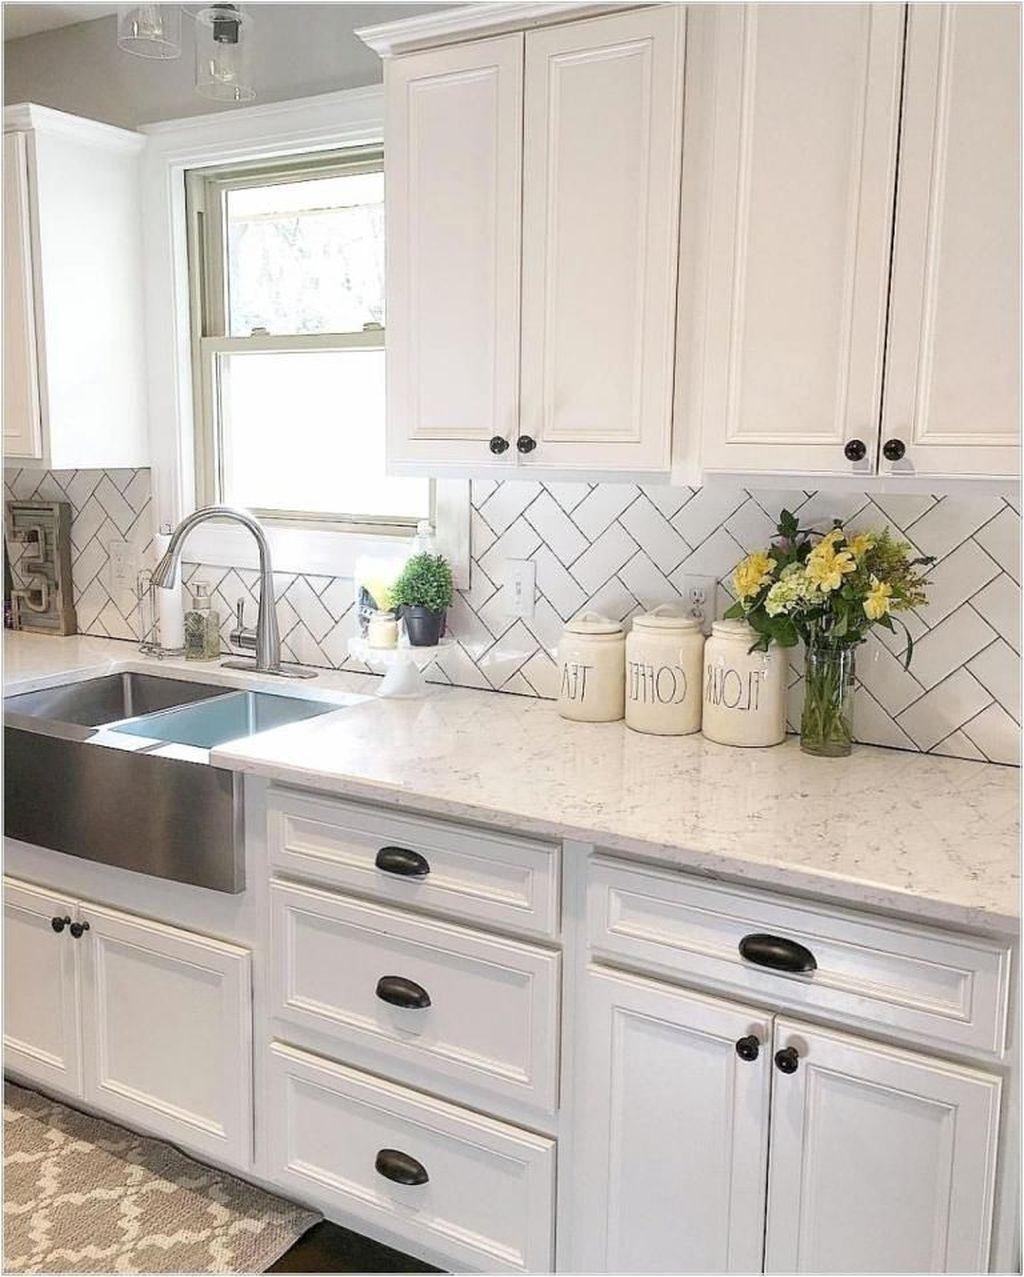 Farmhouse Kitchen With Dark Cabinets: Farmhouse Sink Kitchen, Farmhouse Kitchen Cabinets, Kitchen